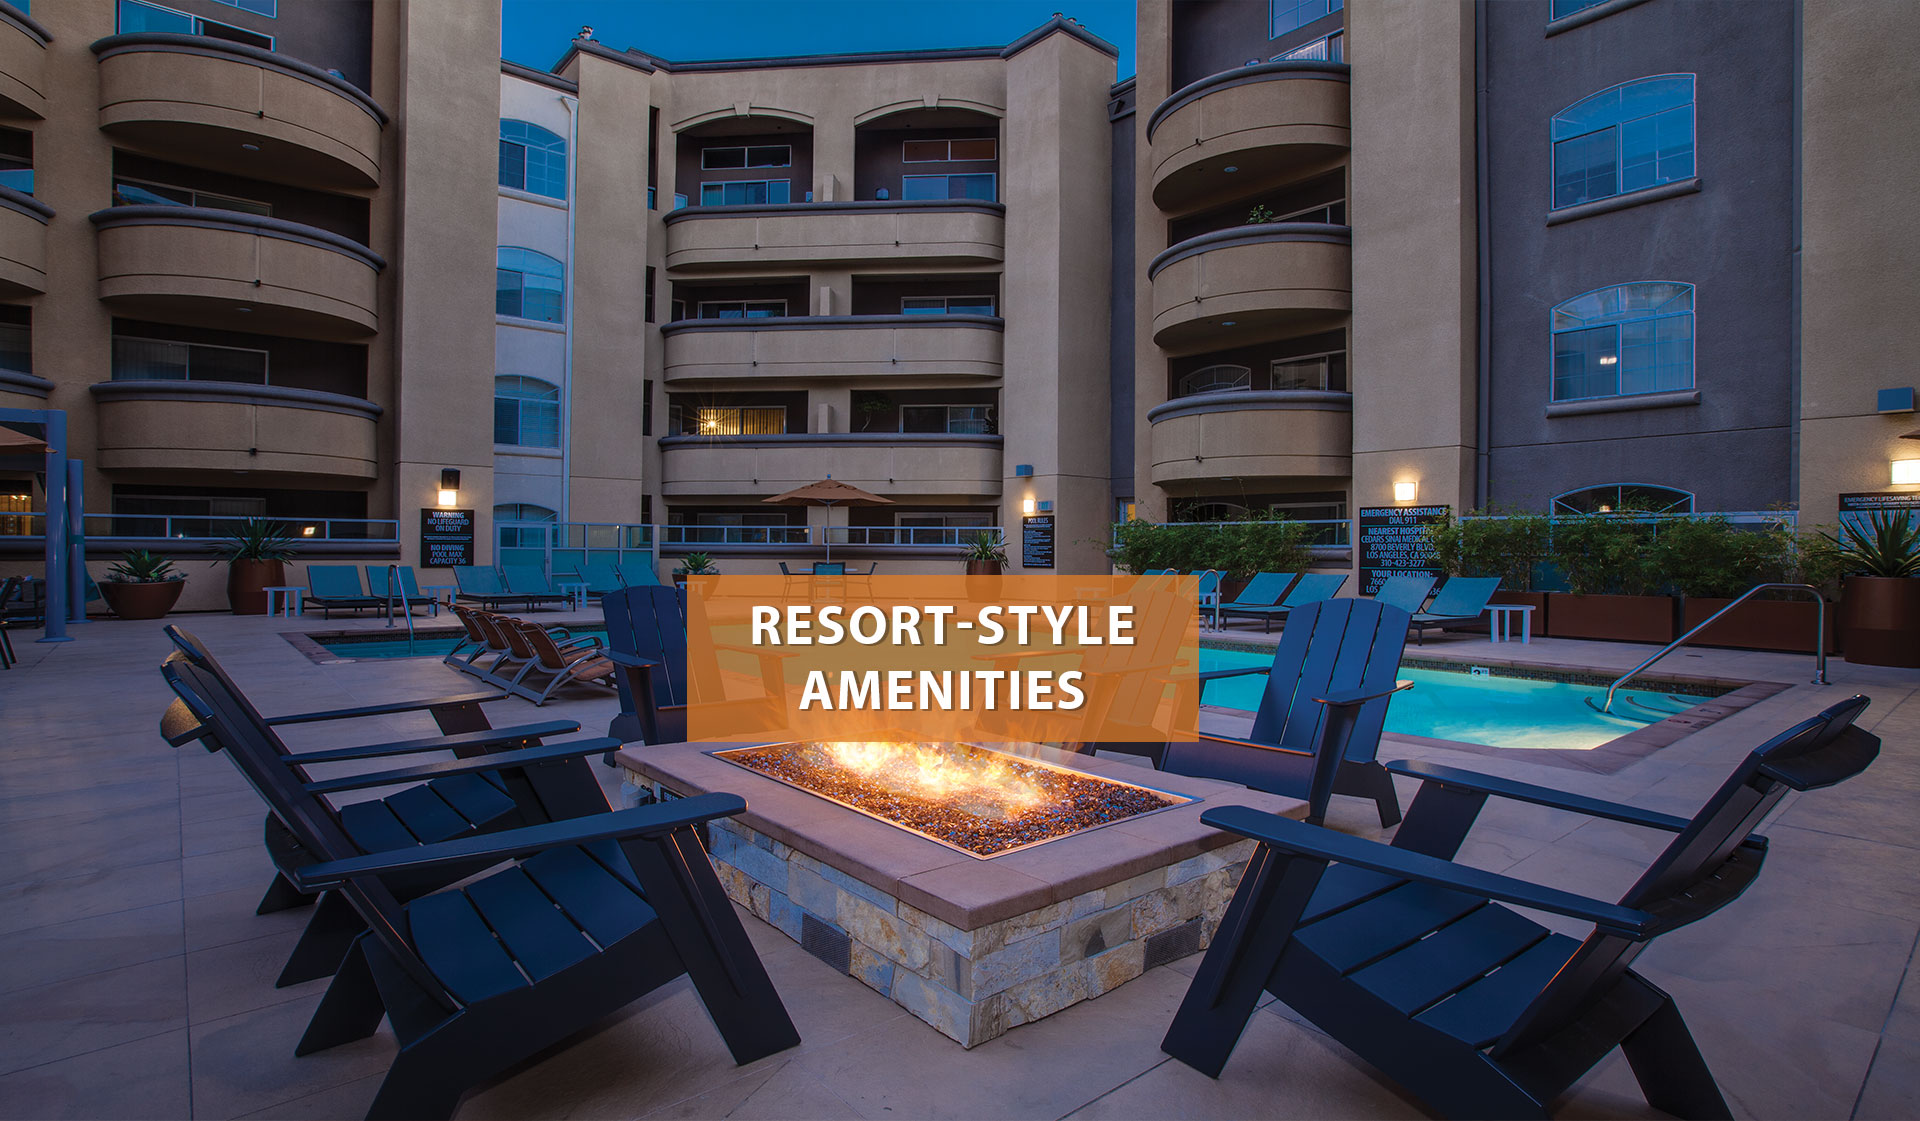 Broadcast Center Apartments - chairs around firepit by pool - Los Angeles, California